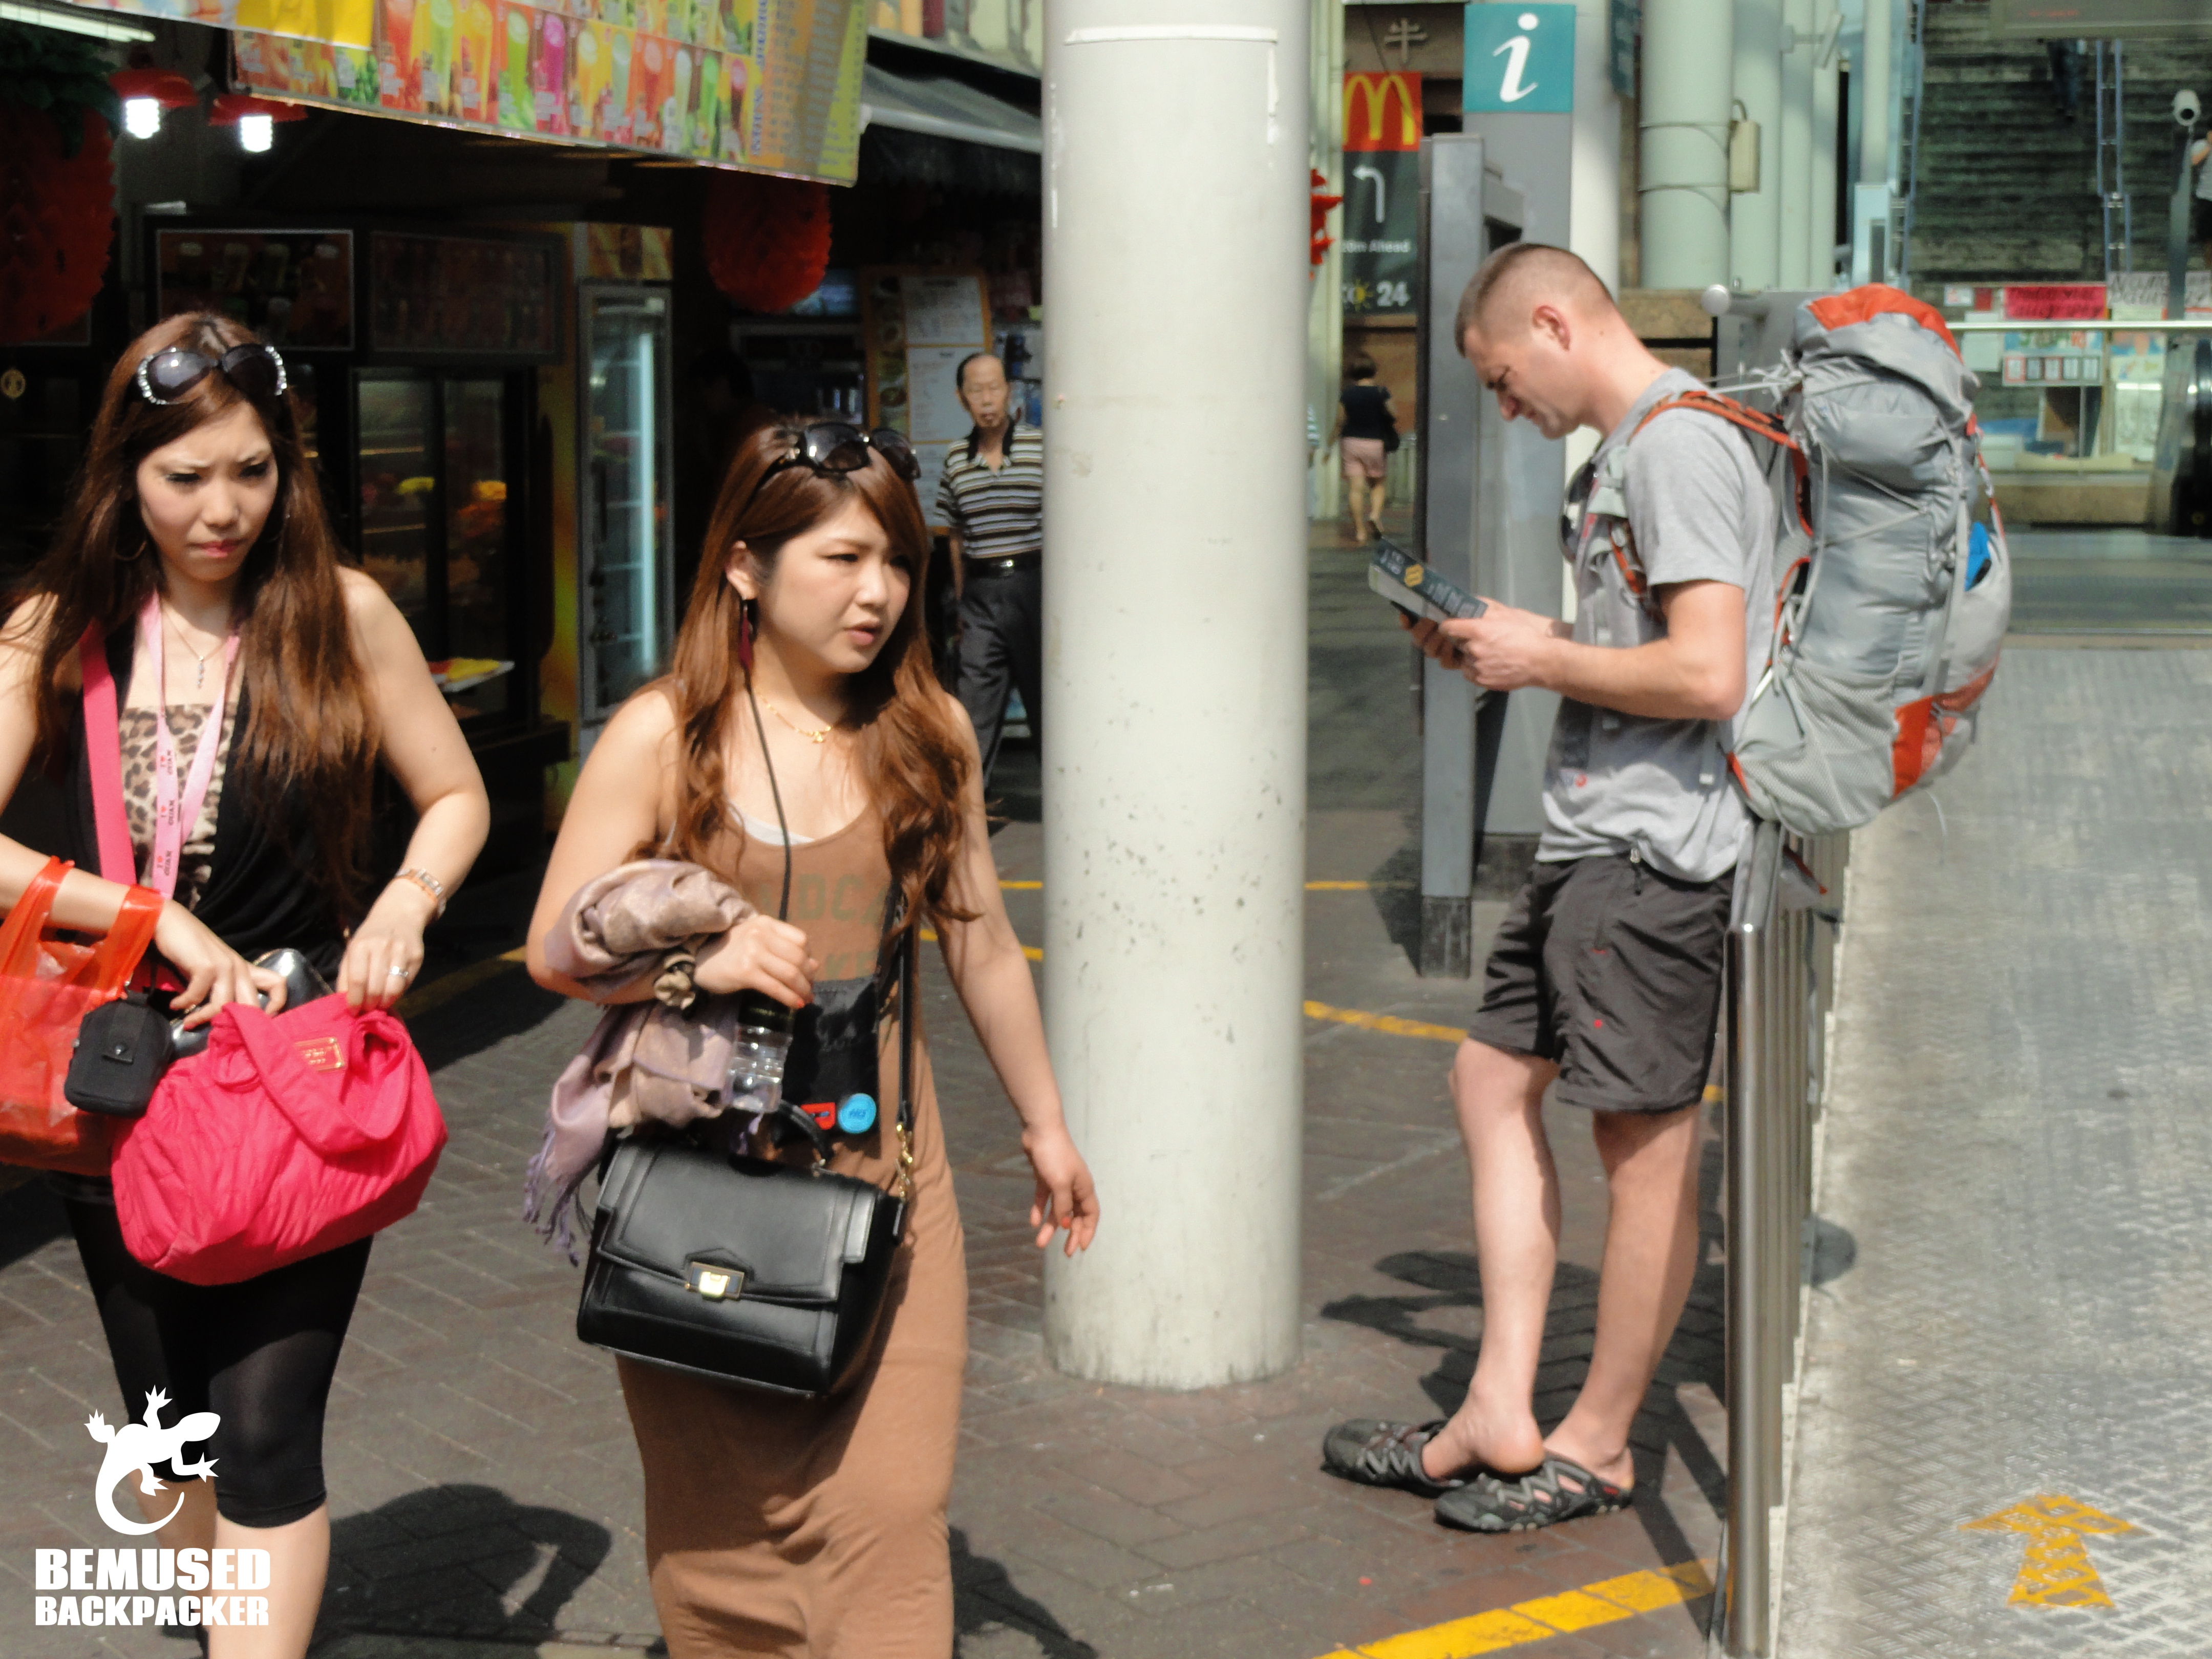 Solo Male Backpacker Safety Tips Bemused Backpacker